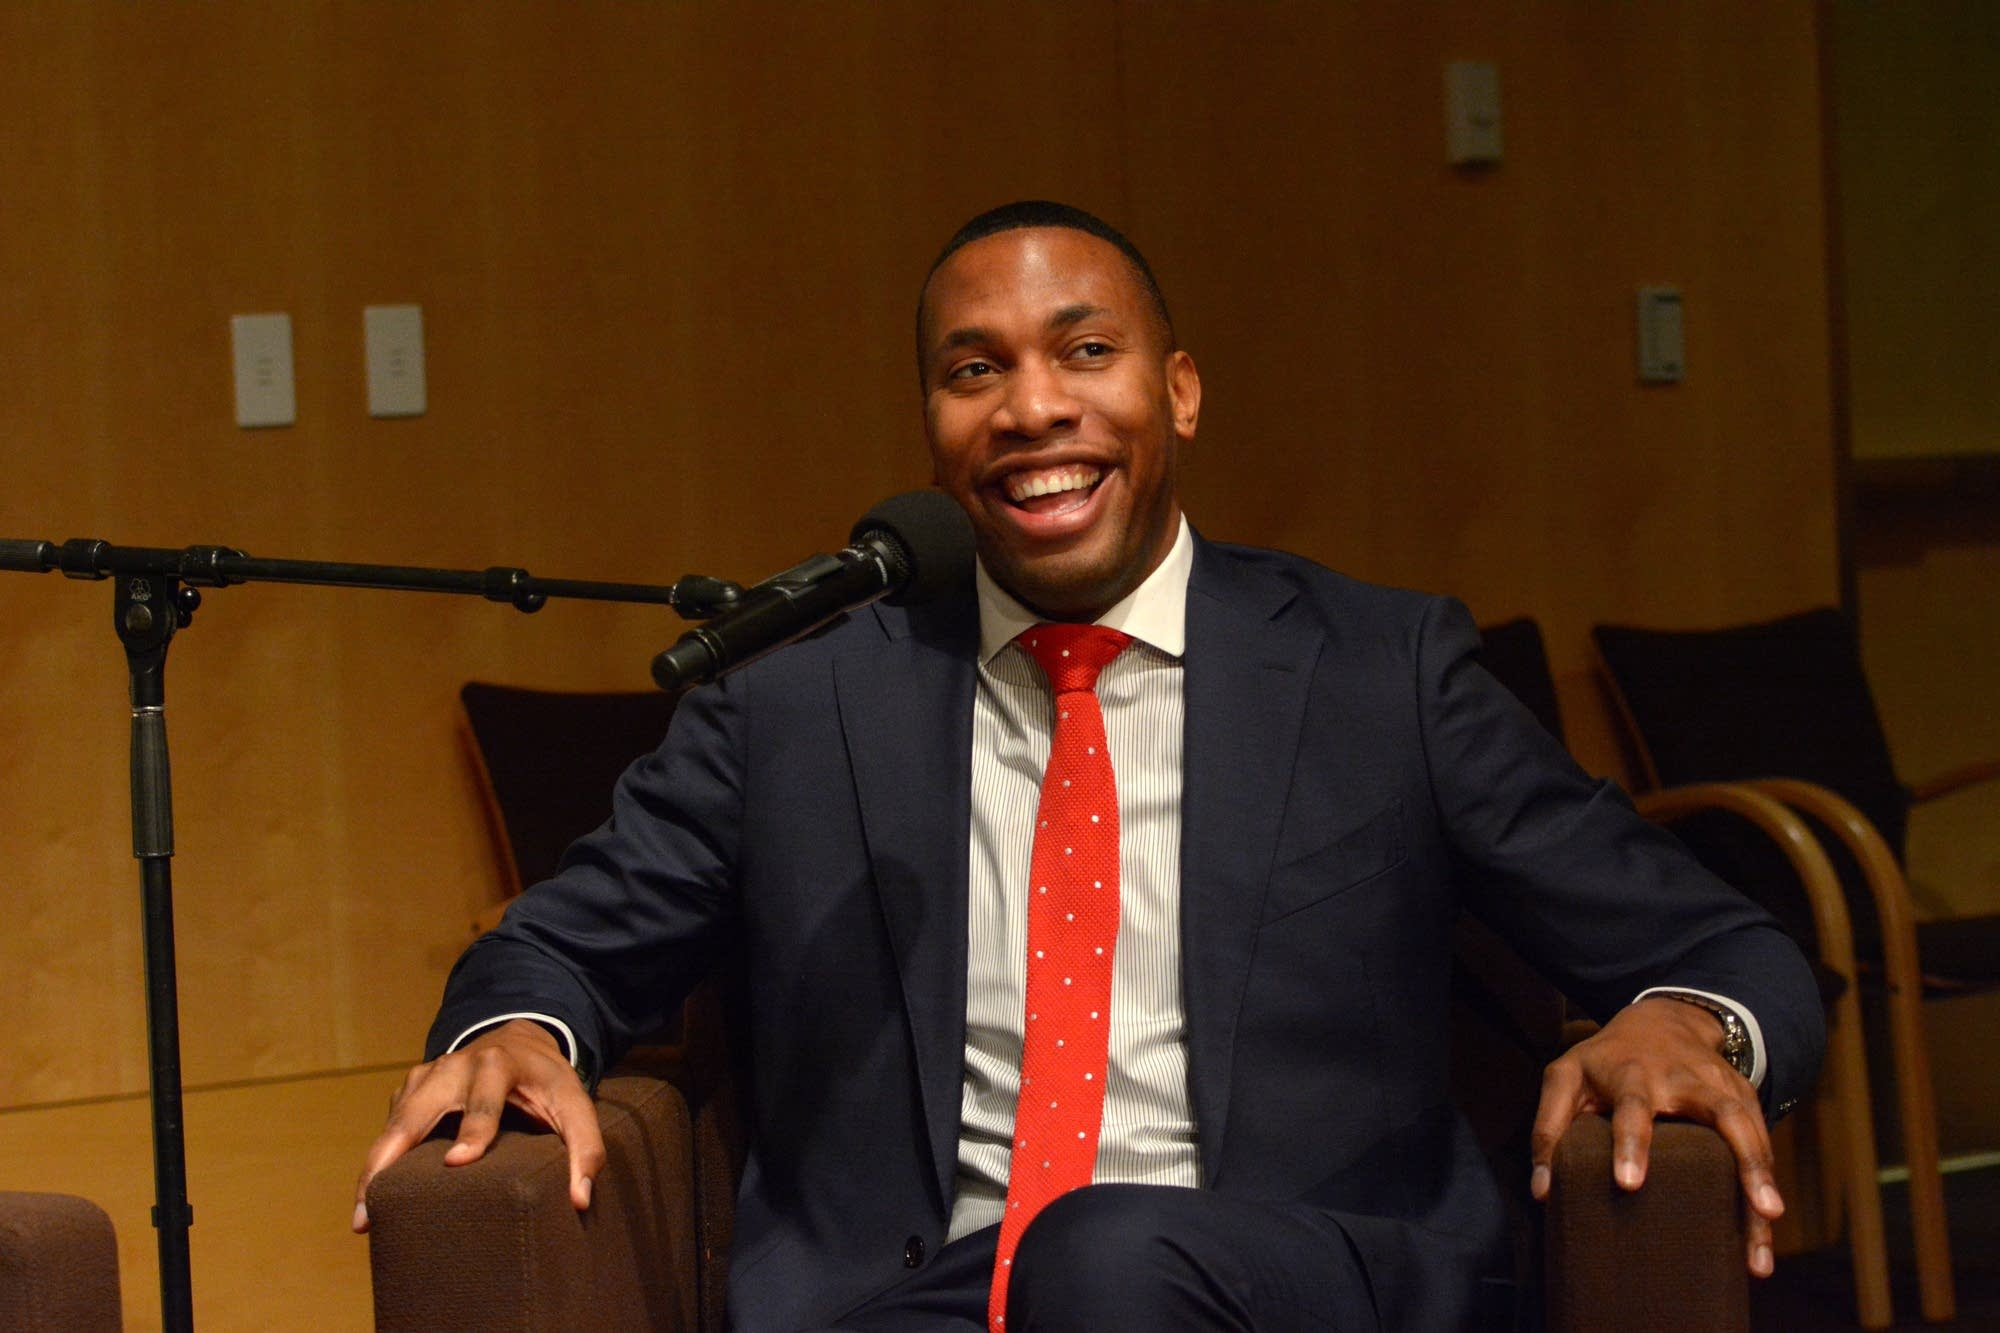 Roderick Cox Forum Event at MPR